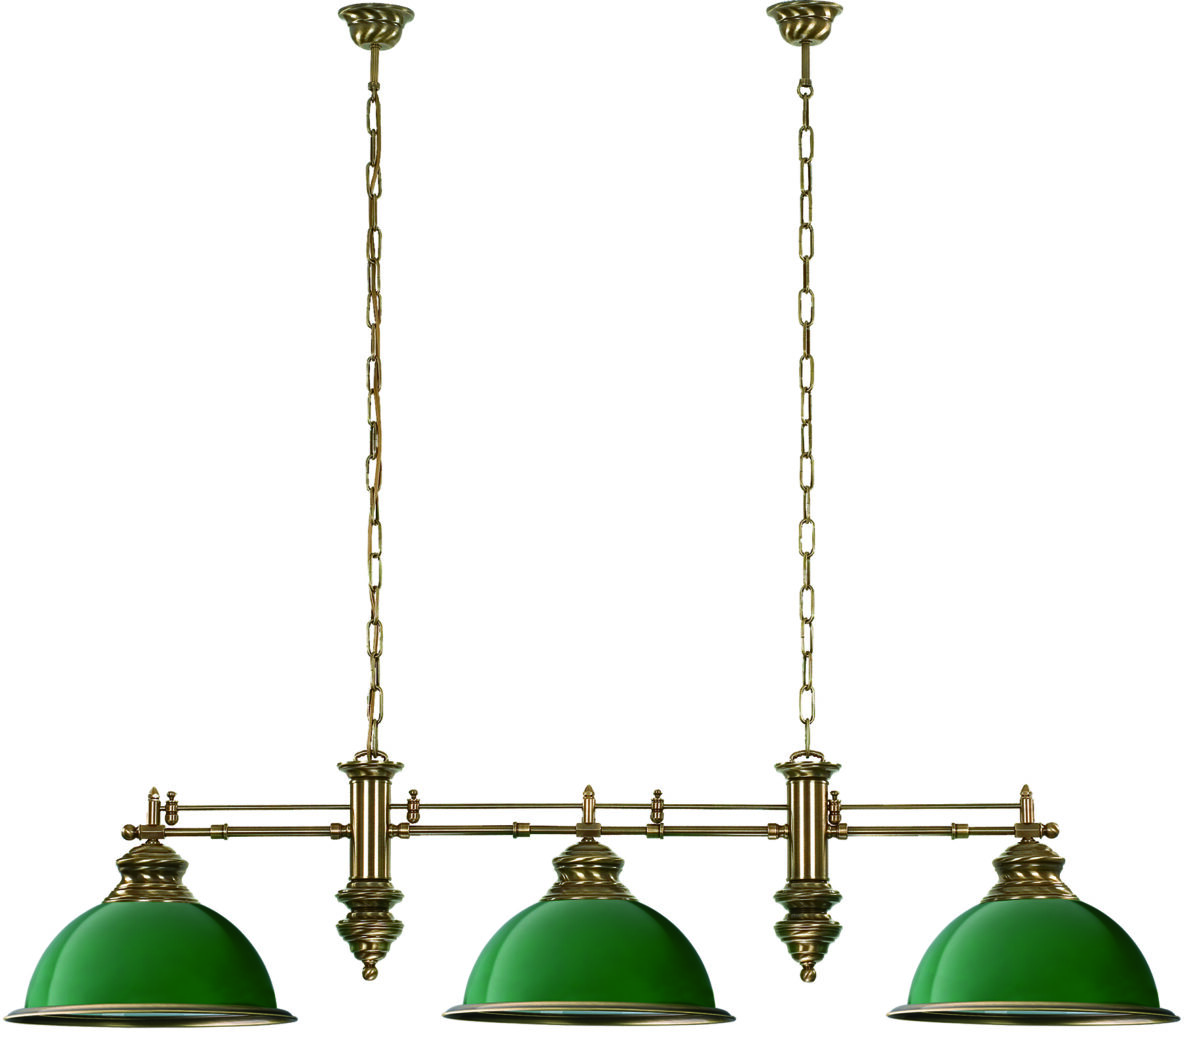 Snooker Table Lighting Lido Bar Ceiling Light Green Luxury Chandelier